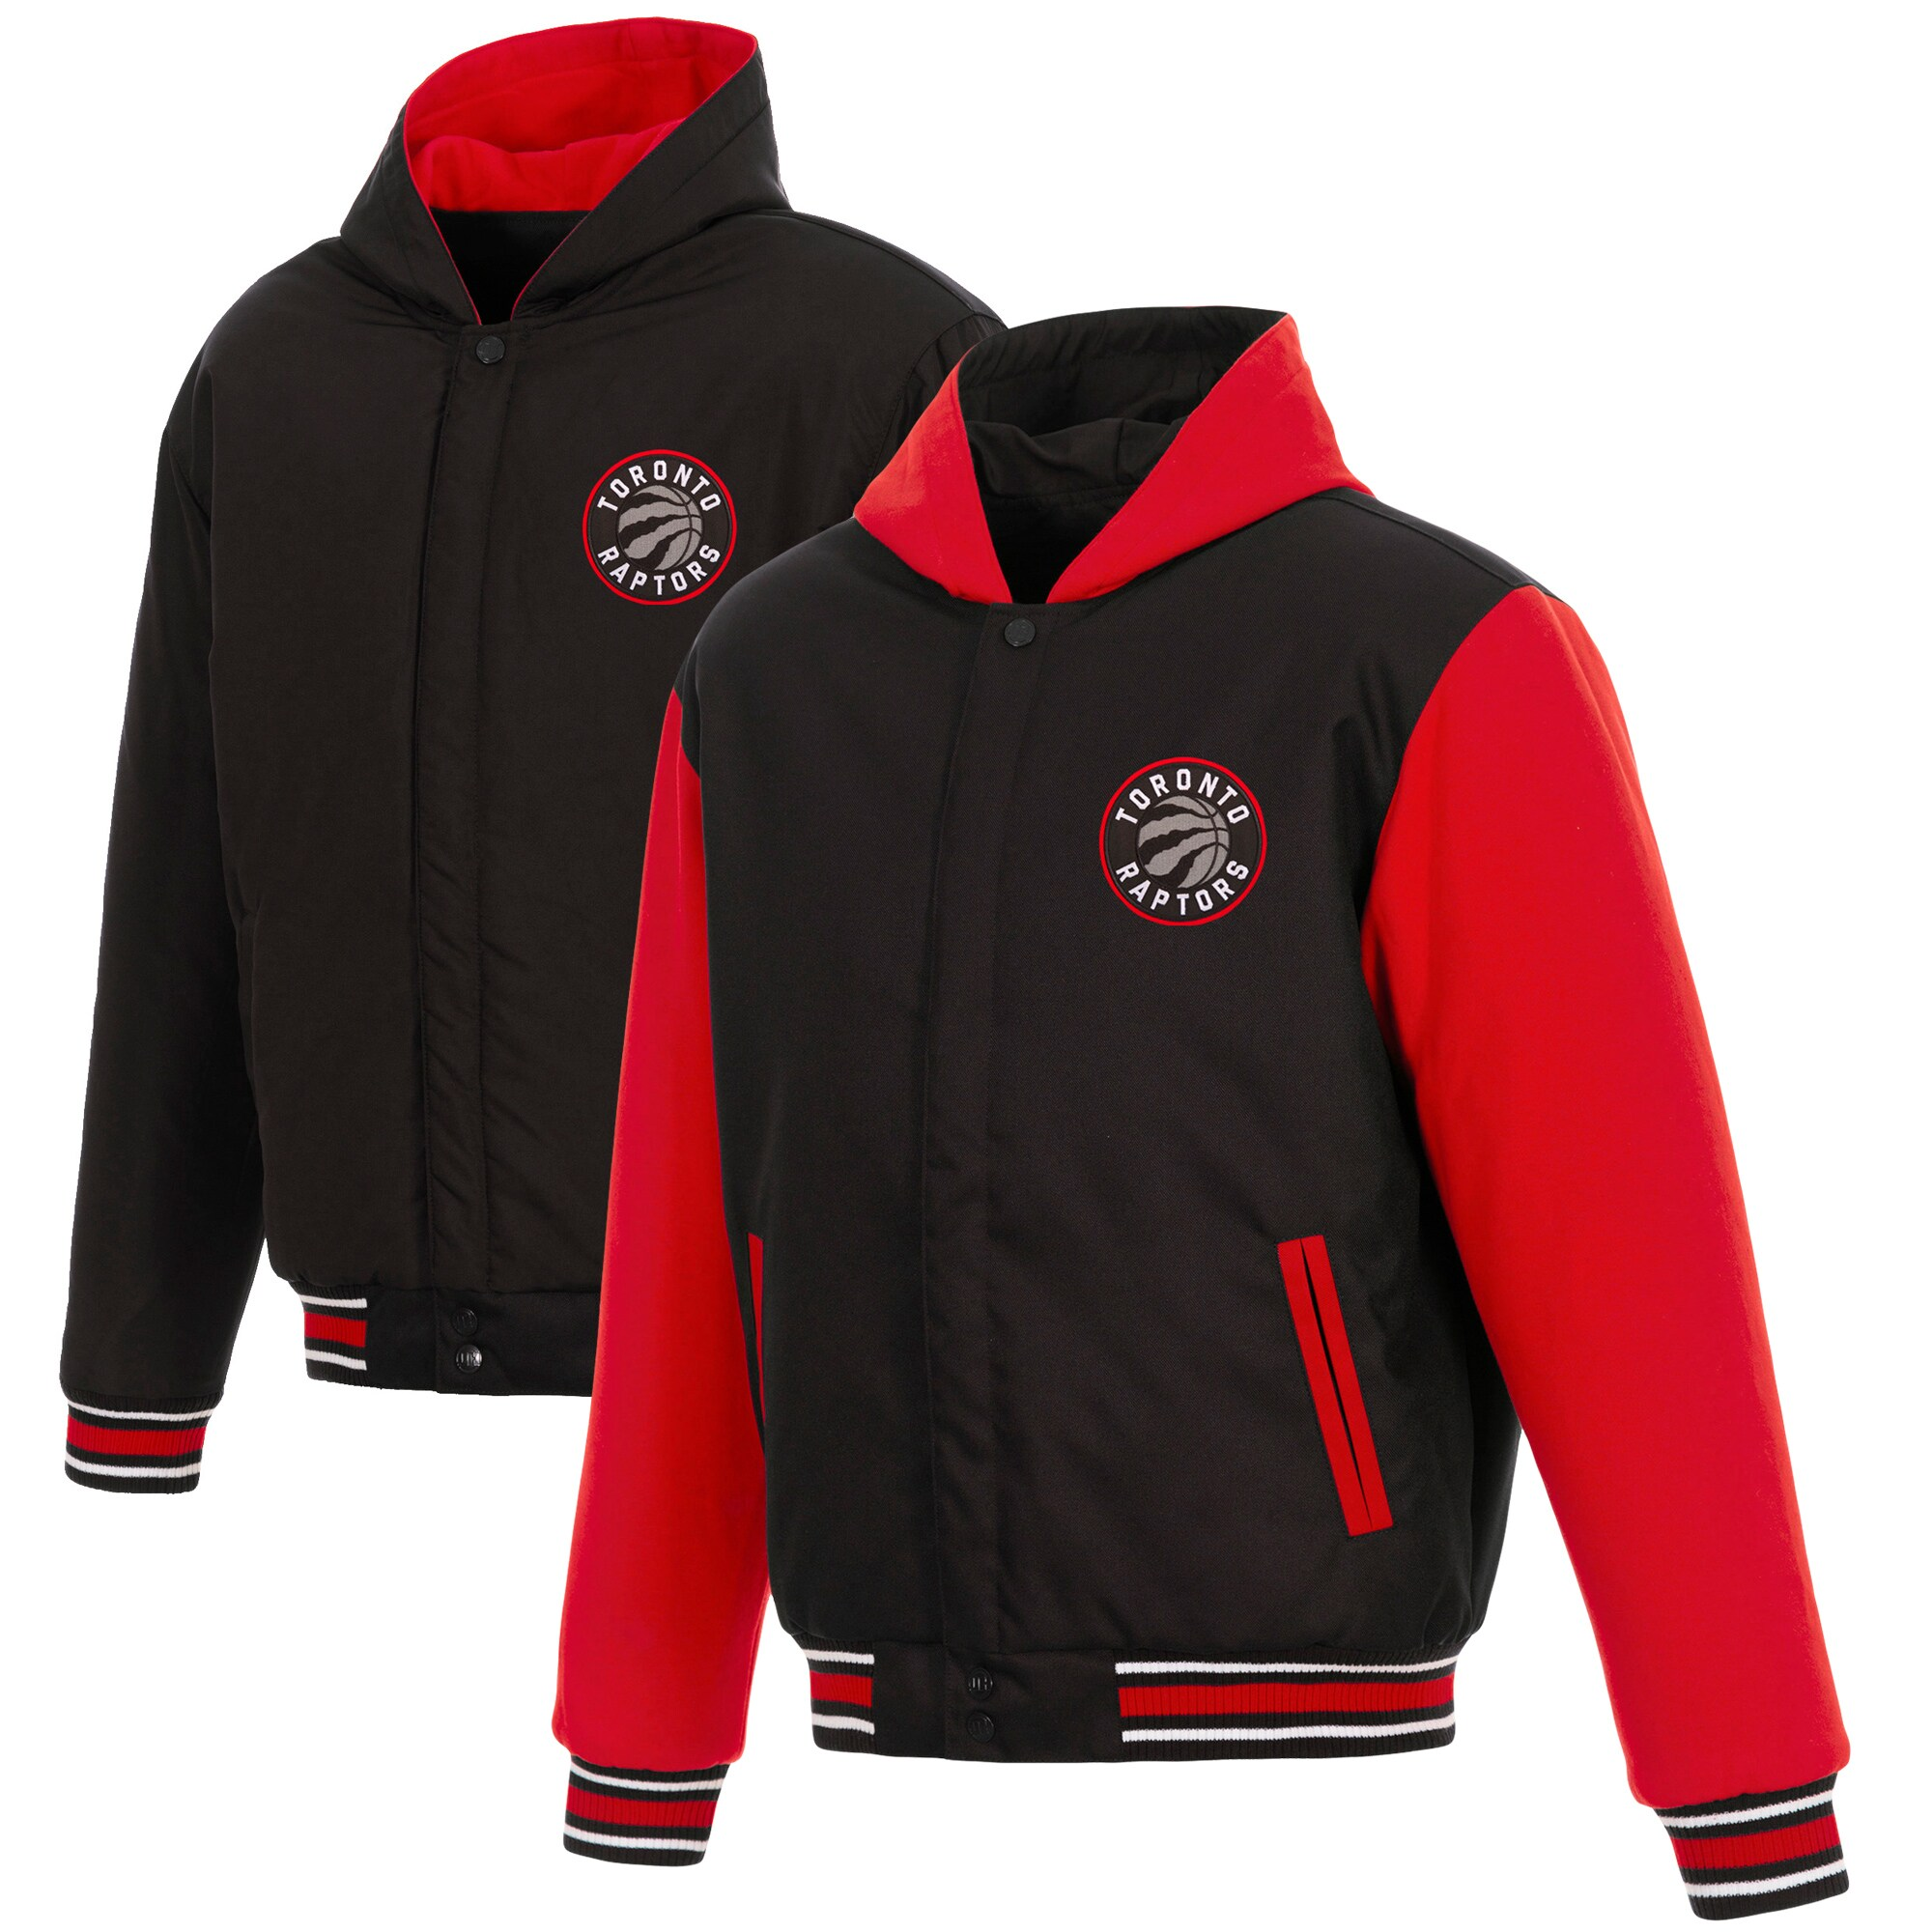 Toronto Raptors JH Design Reversible Poly-Twill Hooded Jacket with Fleece Sleeves - Black/Red